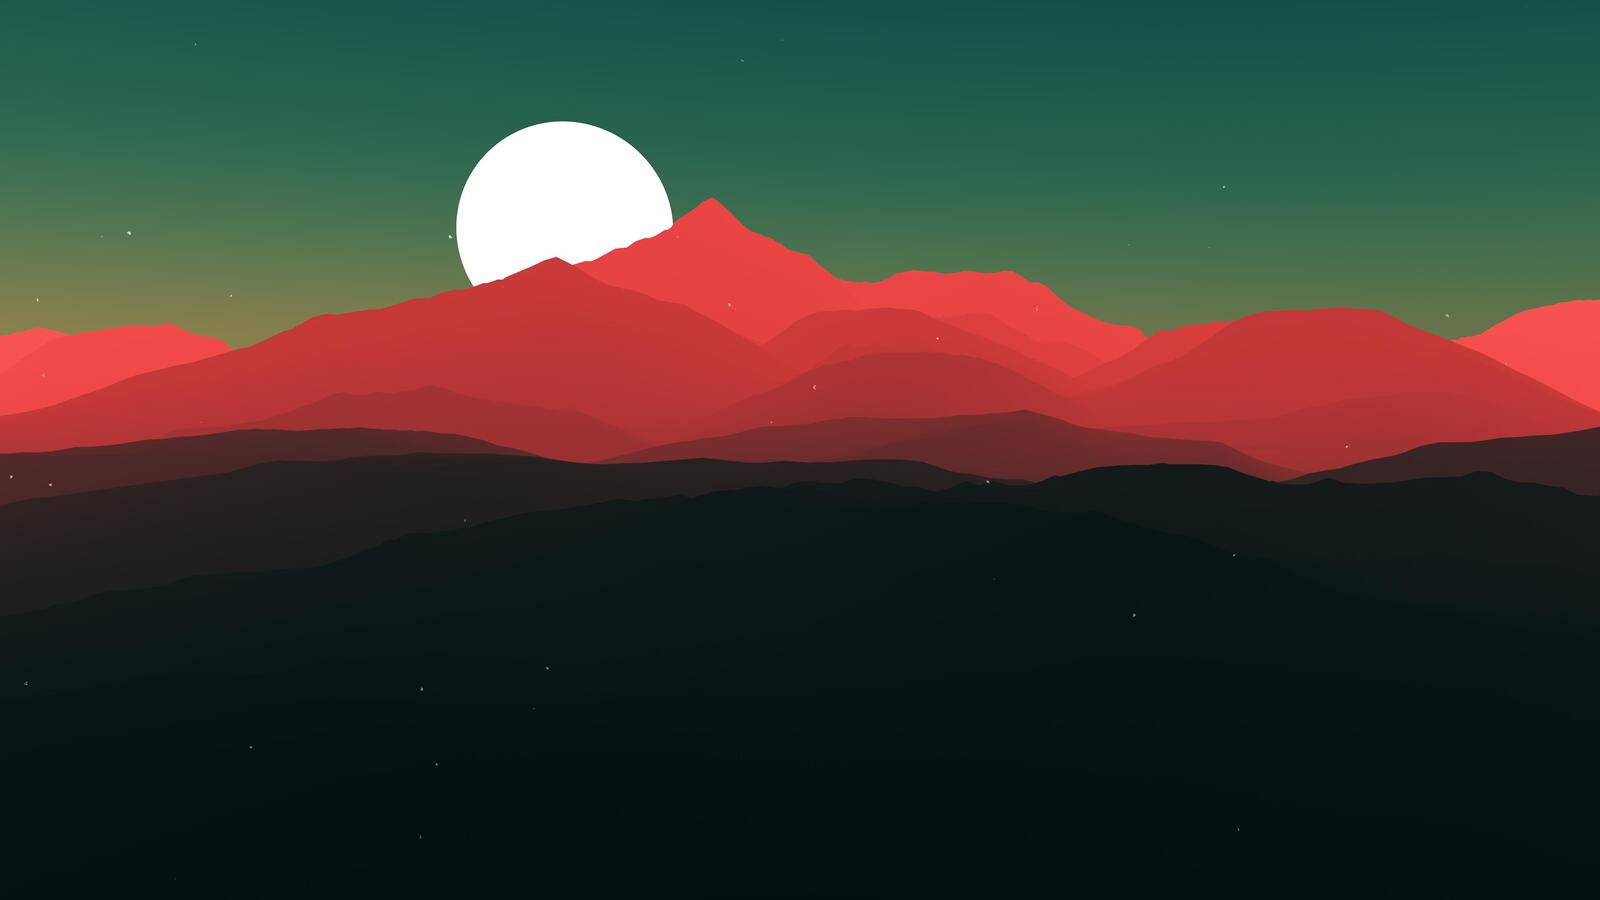 1600x900 minimalist landscape 4k 1600x900 resolution hd 4k wallpapers images backgrounds - Wallpapers 1600x900 ...